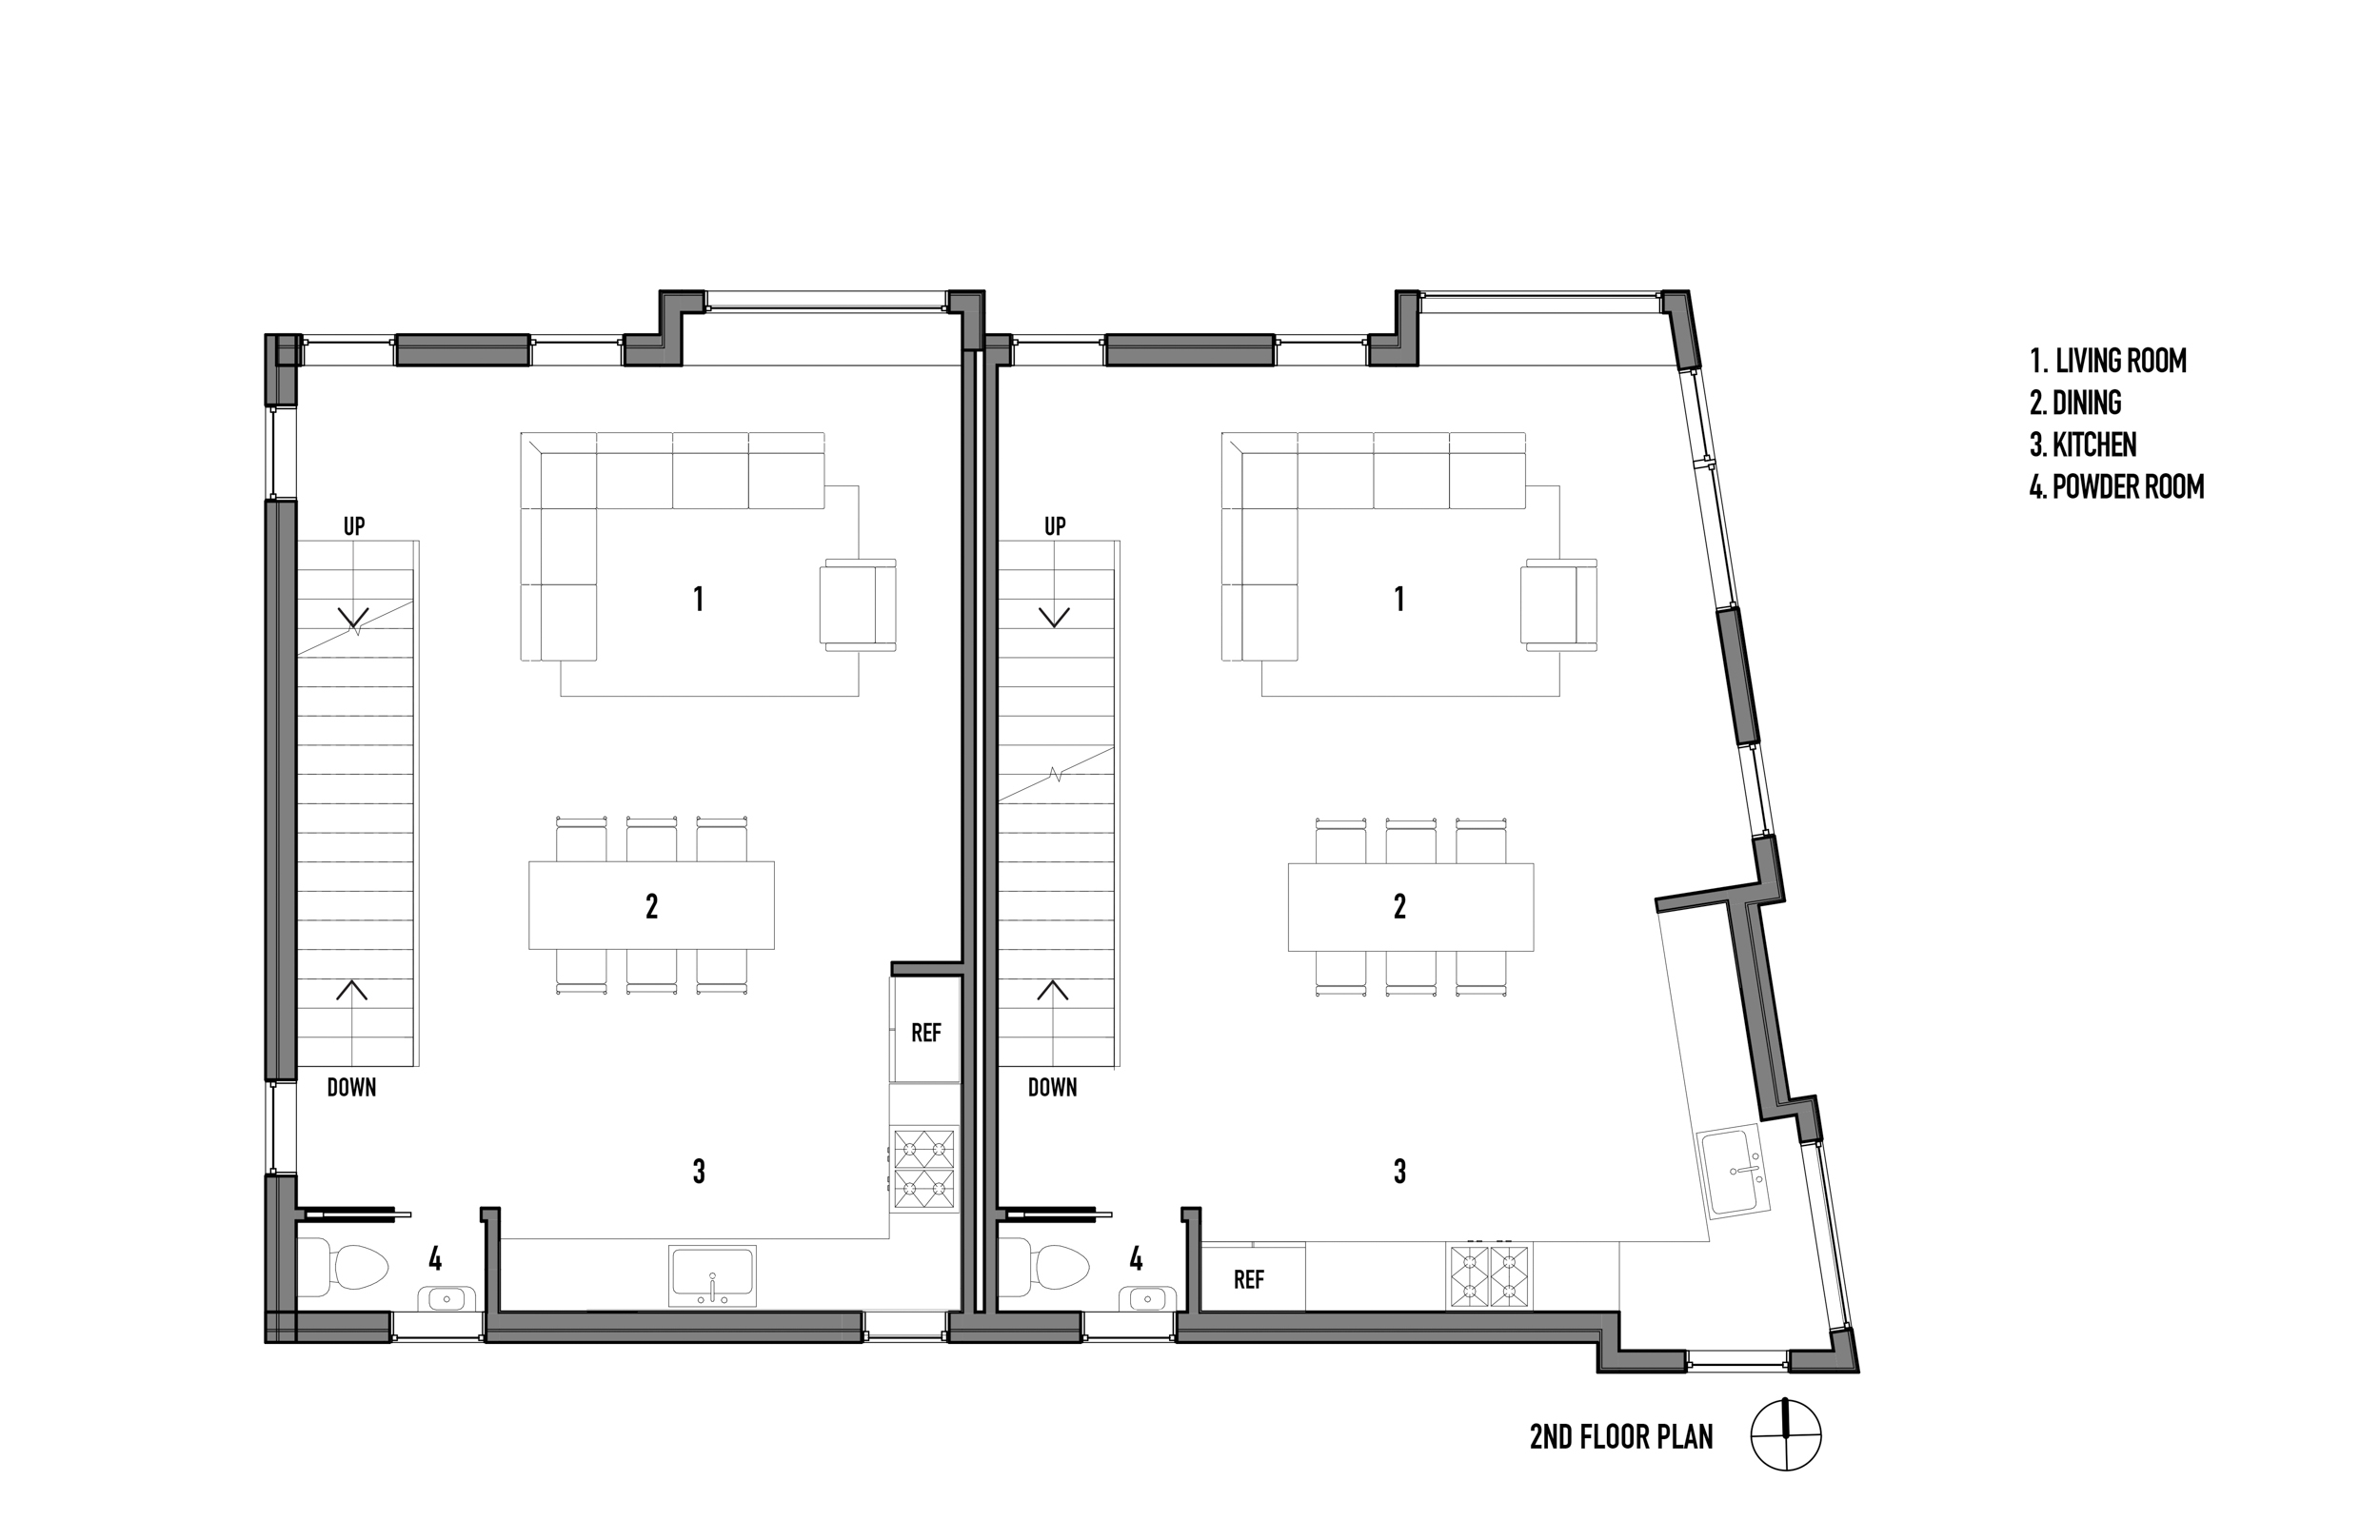 pairallel-wc-studio-architects-townhomes-Second-Floor-Plan.jpg